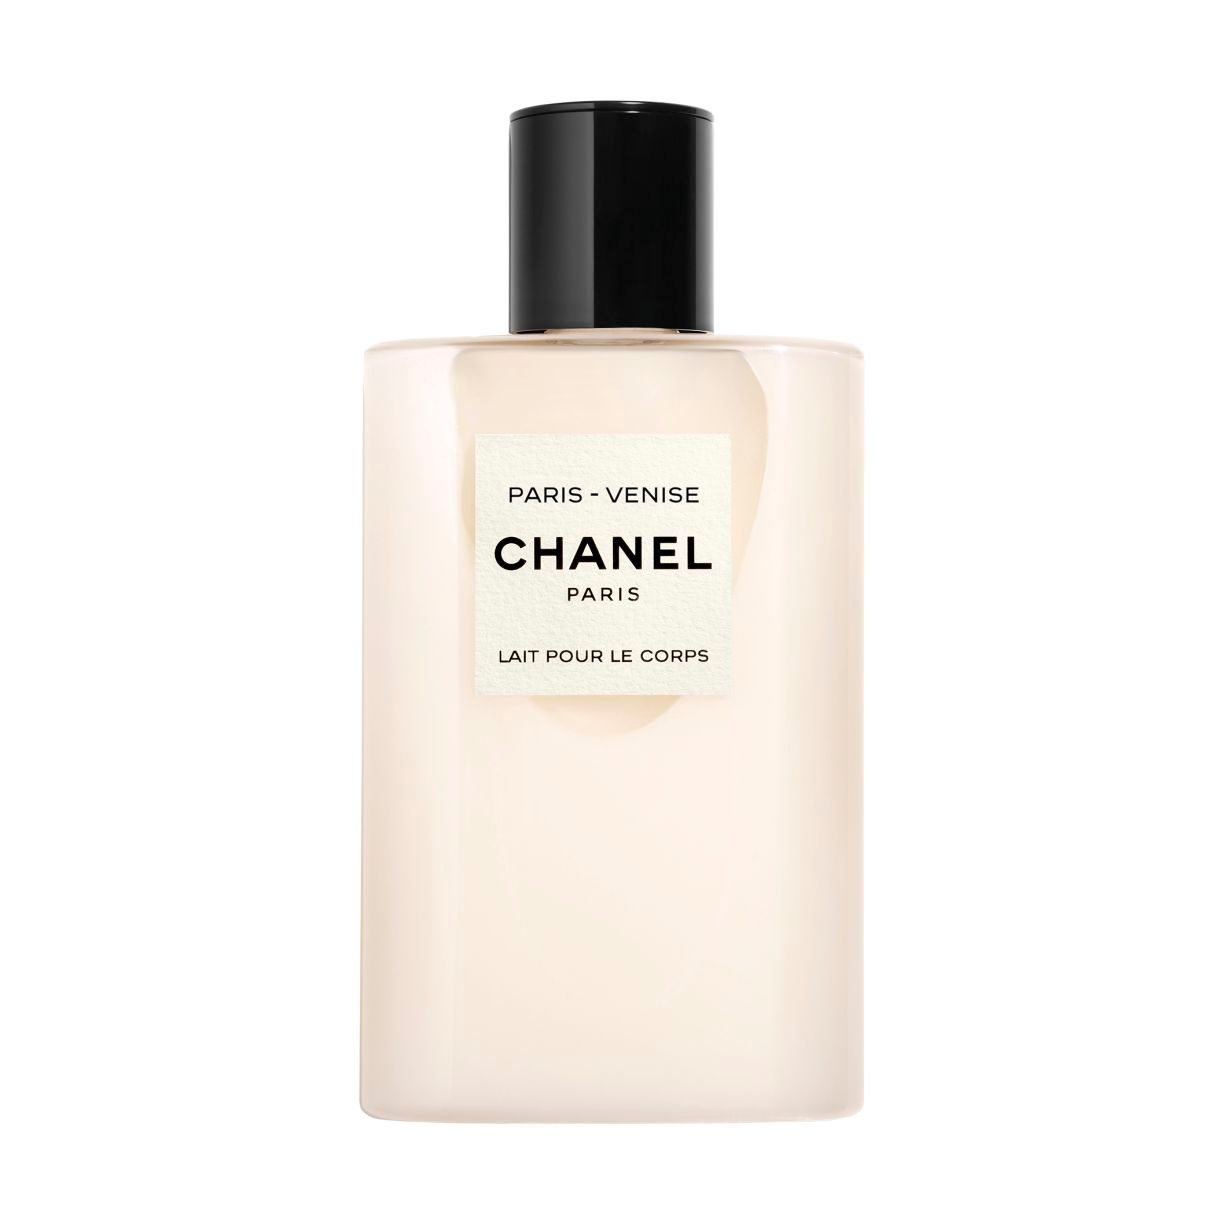 LES EAUX DE CHANEL PARIS - VENISE - BODY LOTION 200ml